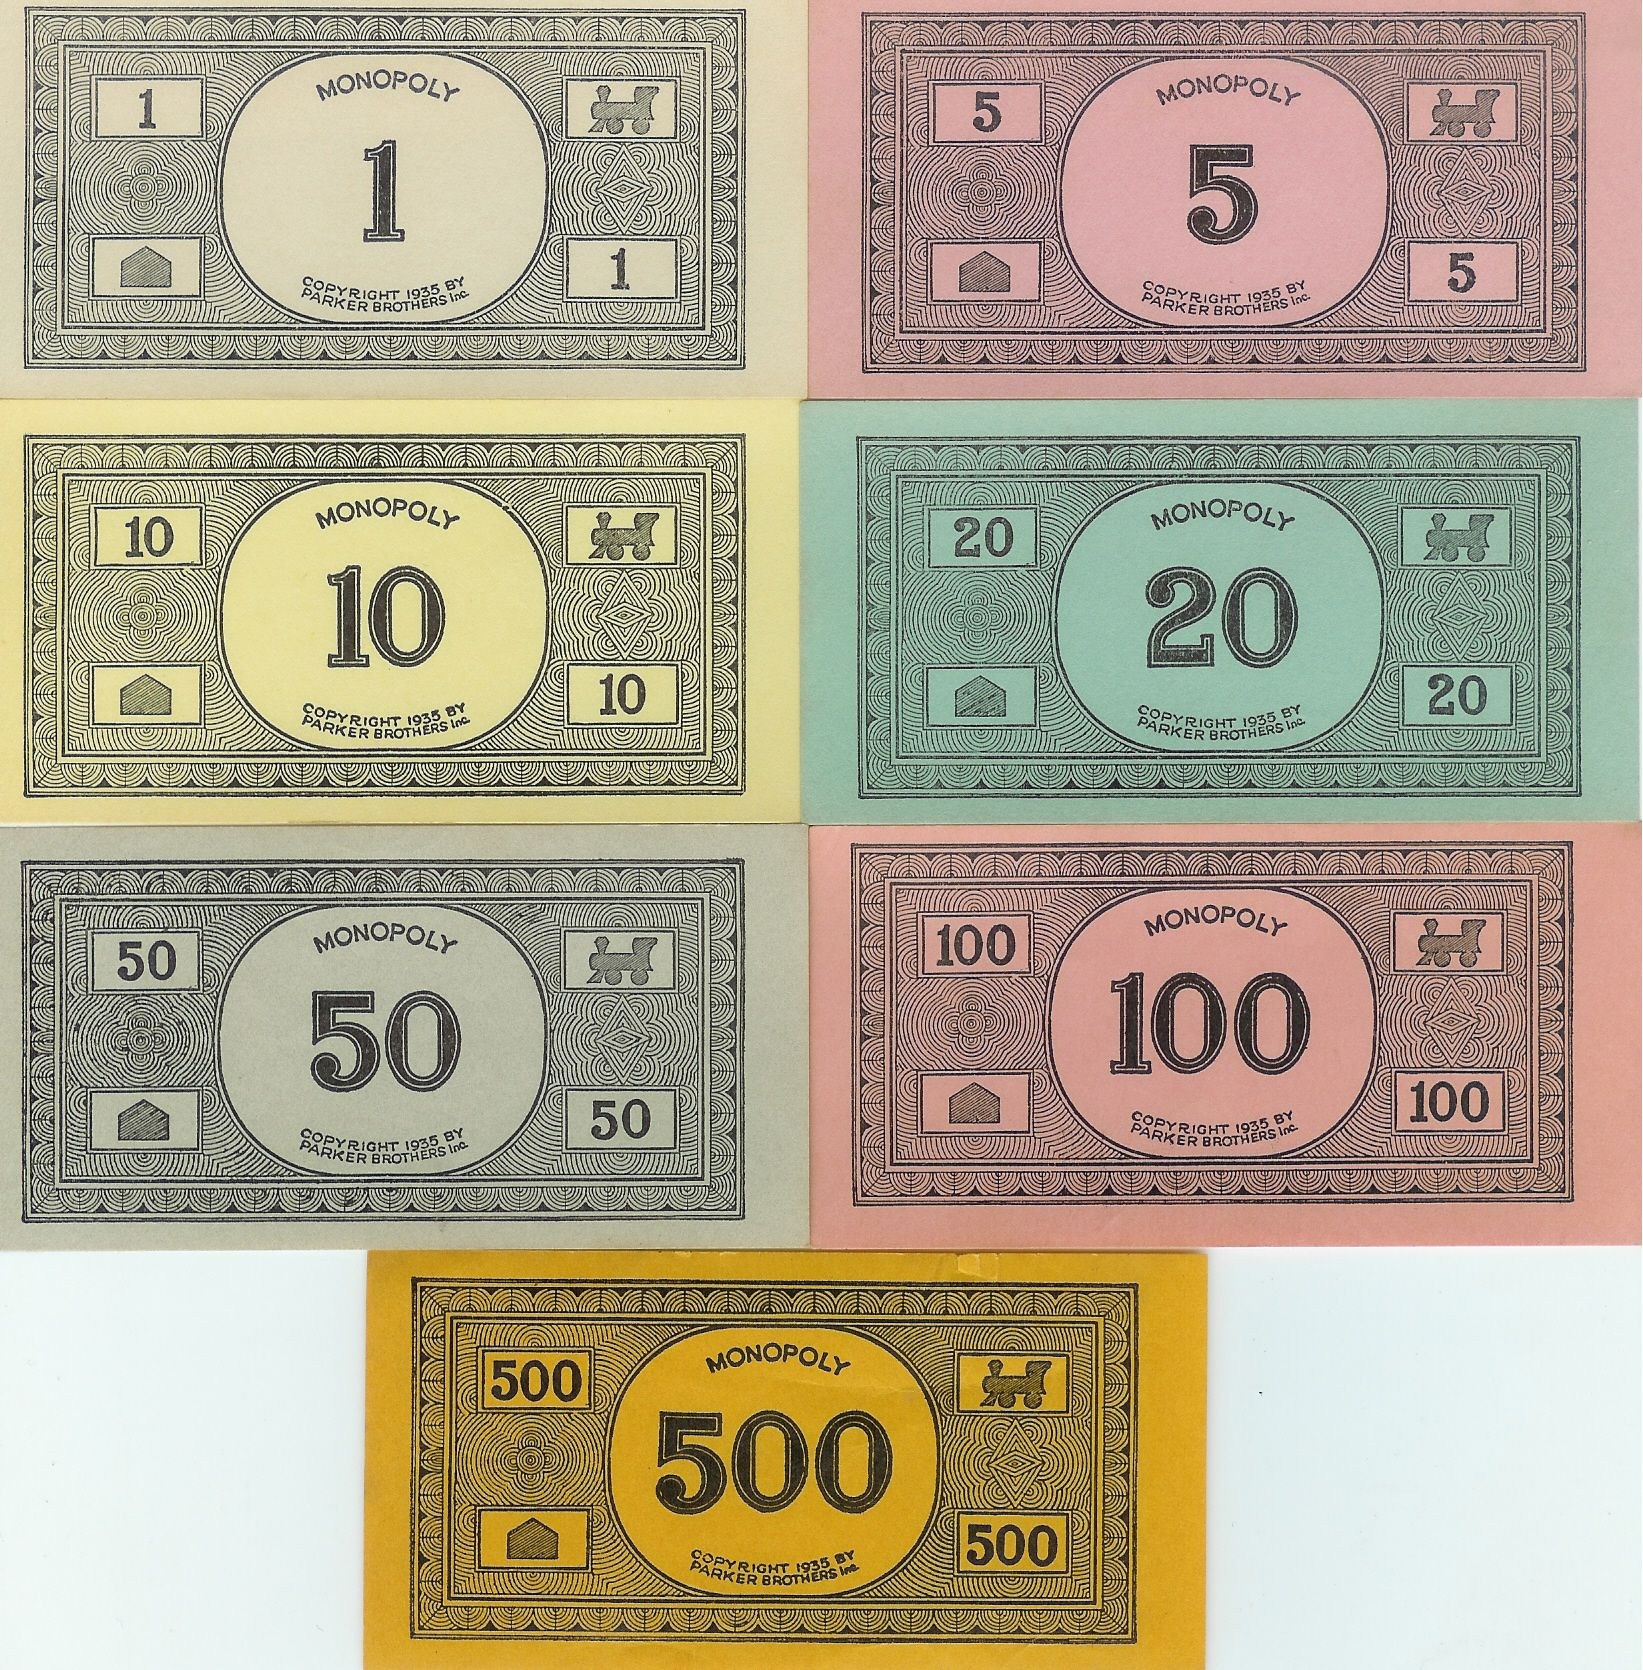 monopoly bills - Google Search | I call bullshit shot